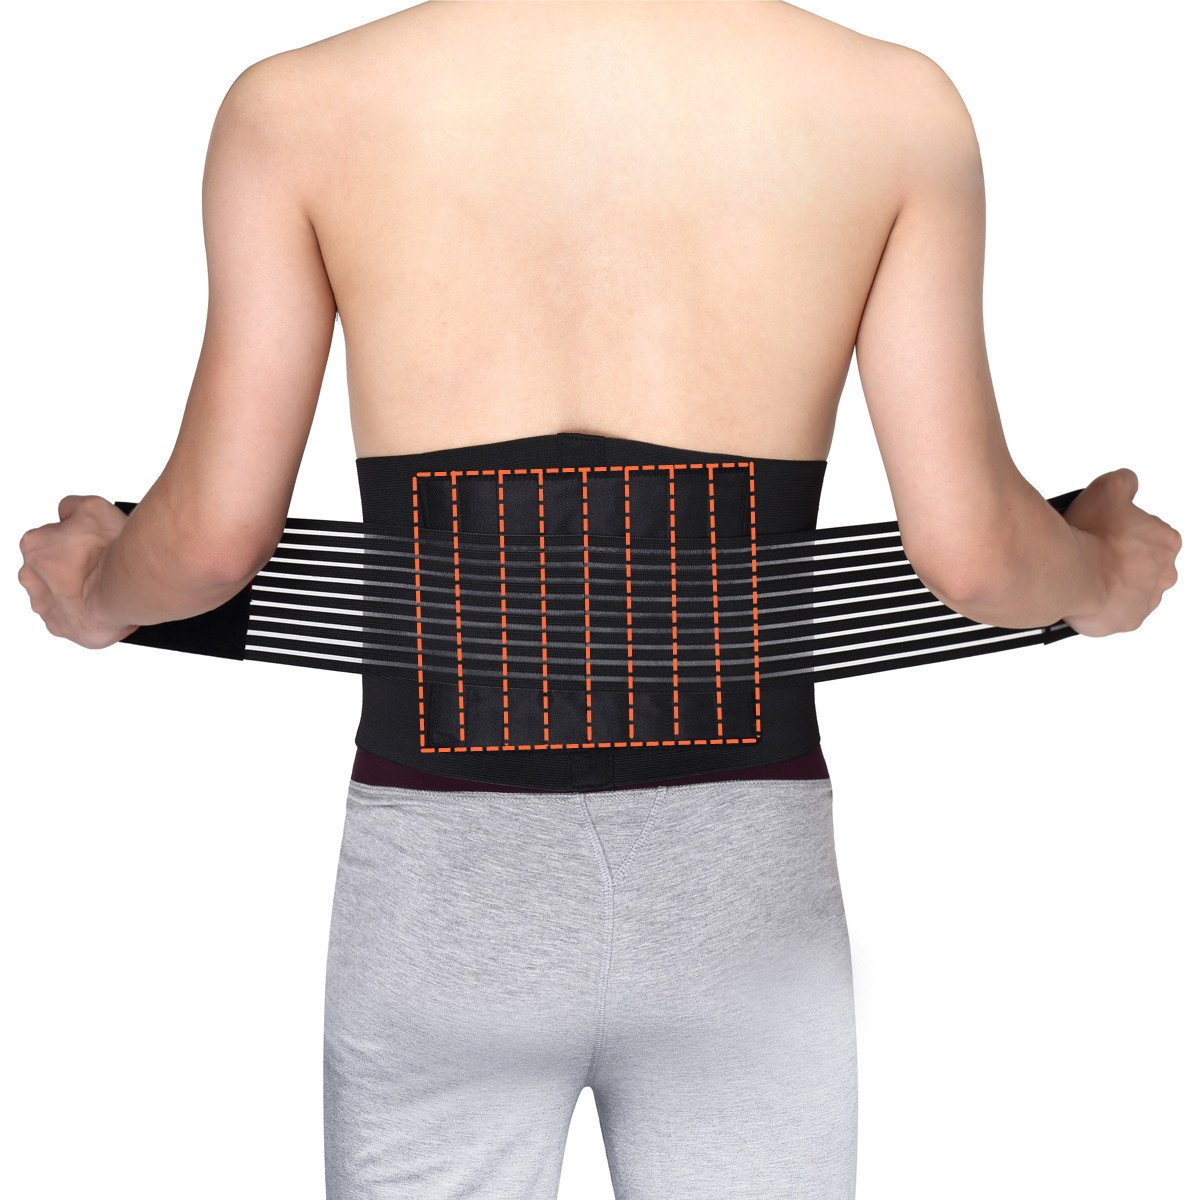 Medical Grade 8 Splints Stabilizing Lumbar Lower Back Brace and Support Belt with Dual Adjustable Straps and Breathable Mesh Panels, Wide Lumbar Support Area by OasisSpace (M 23-30'')